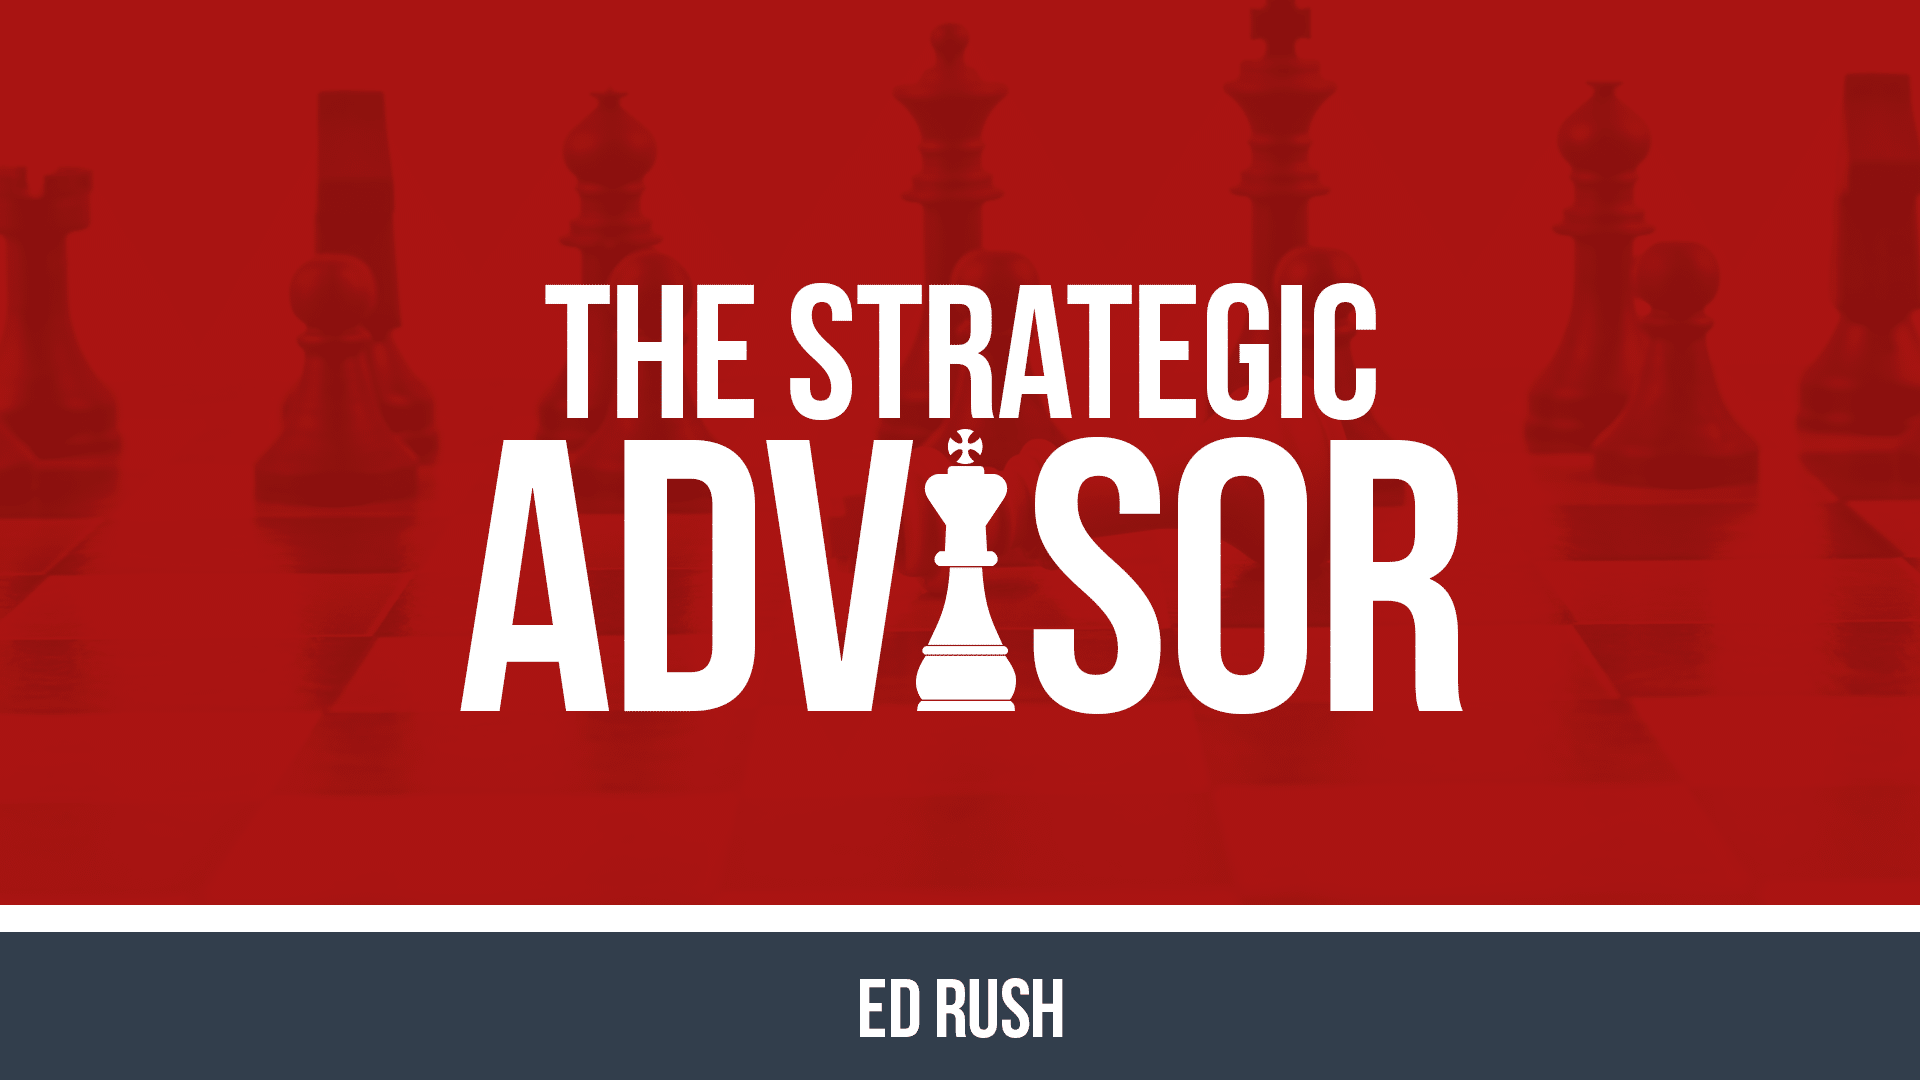 STRATEGICADVISOR